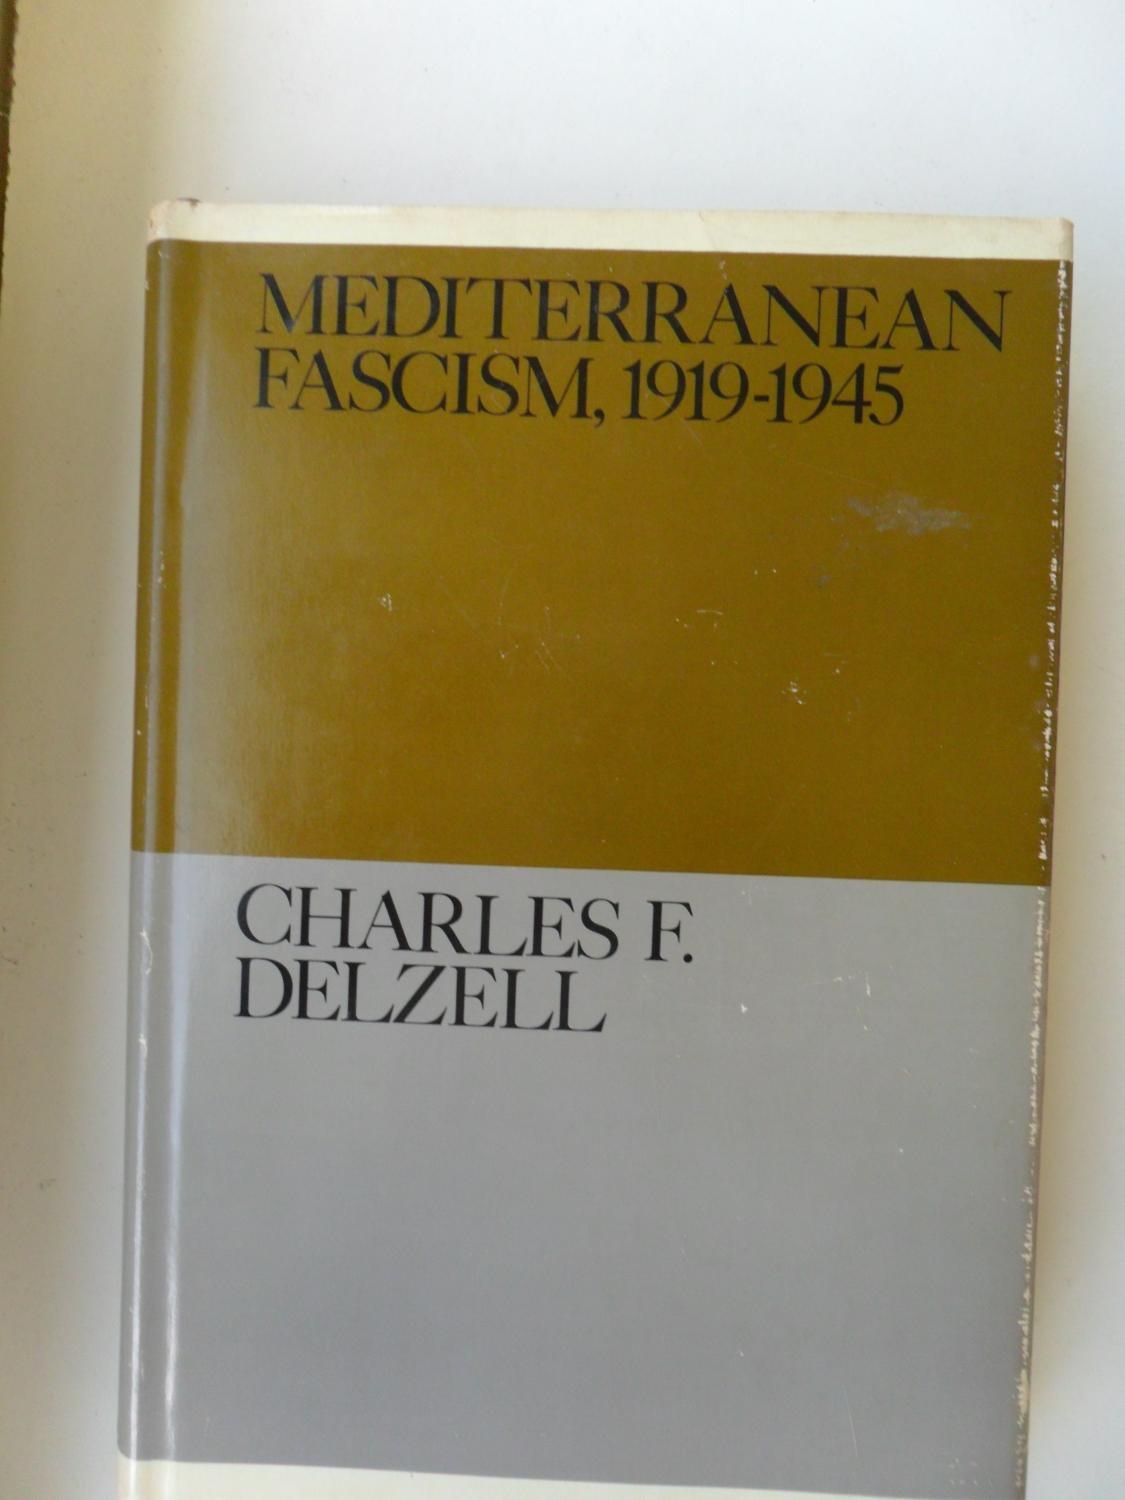 Mediterranean Fascism, 1919-1949 (The Documentary History of Western Civilization Series)